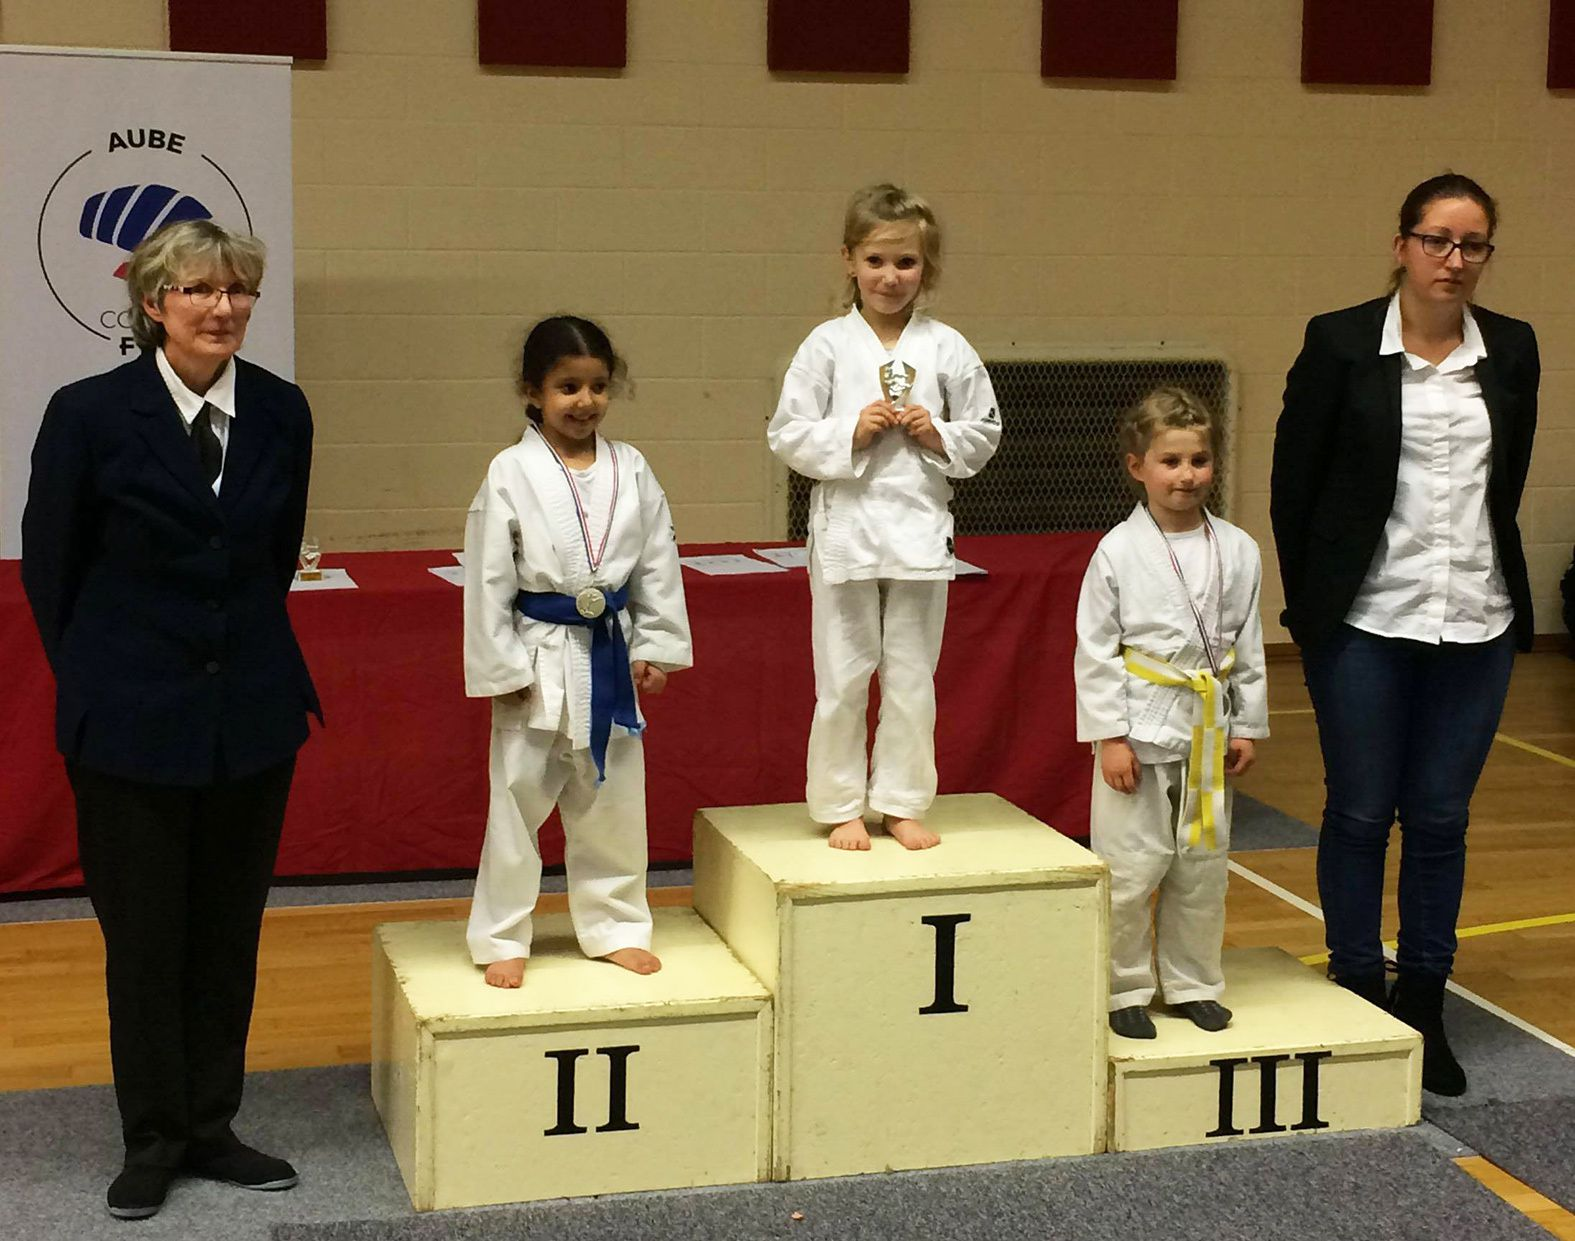 11 podiums en coupe de l'AUBE